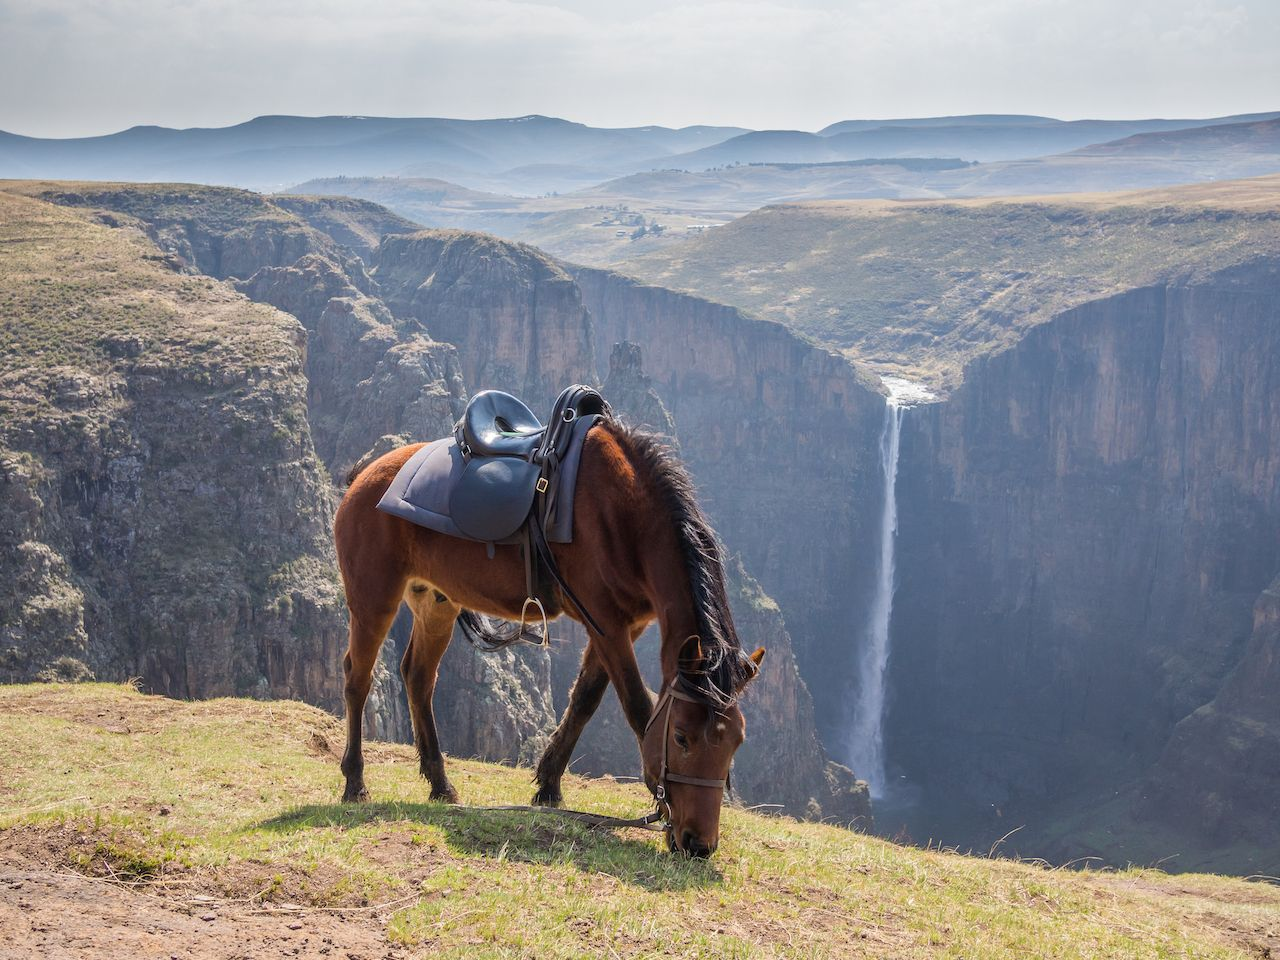 Basuto pony in front of Maletsunyane Falls in Lesotho